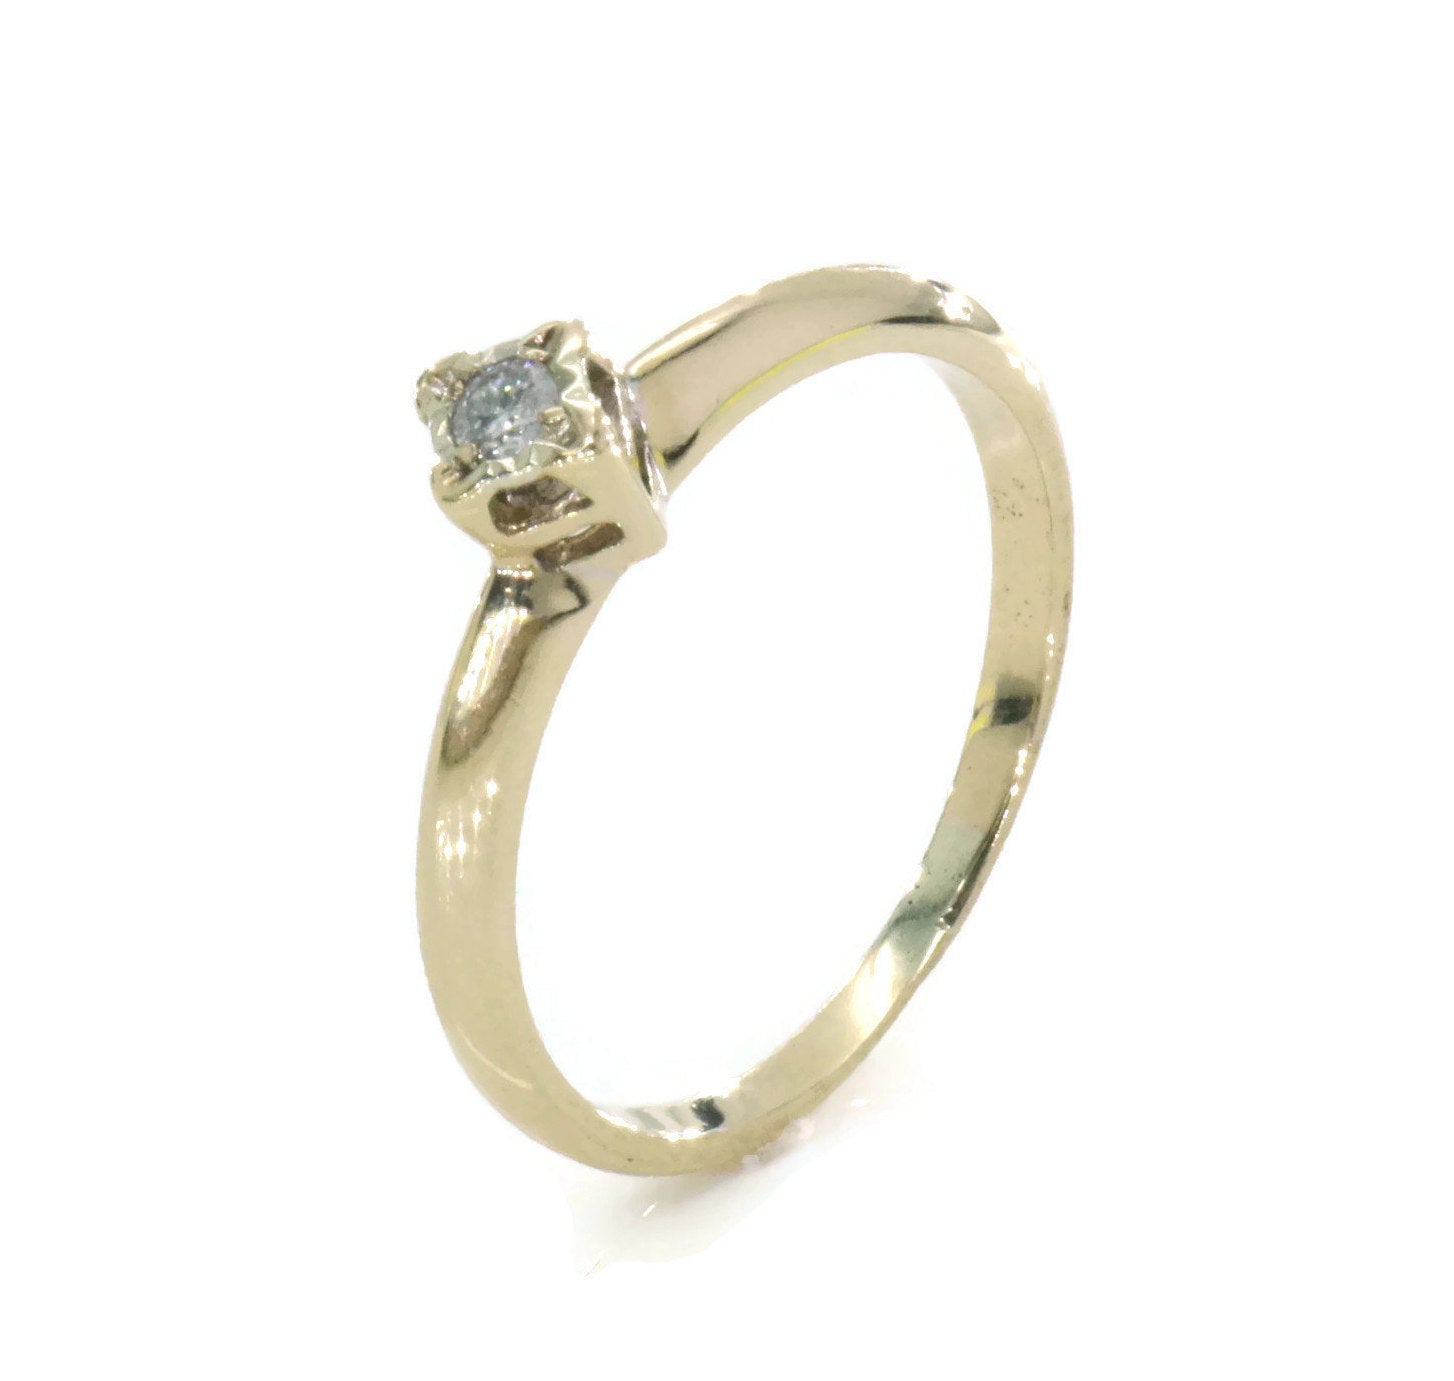 Solitaire White Diamond Ring 9ct Yellow Gold